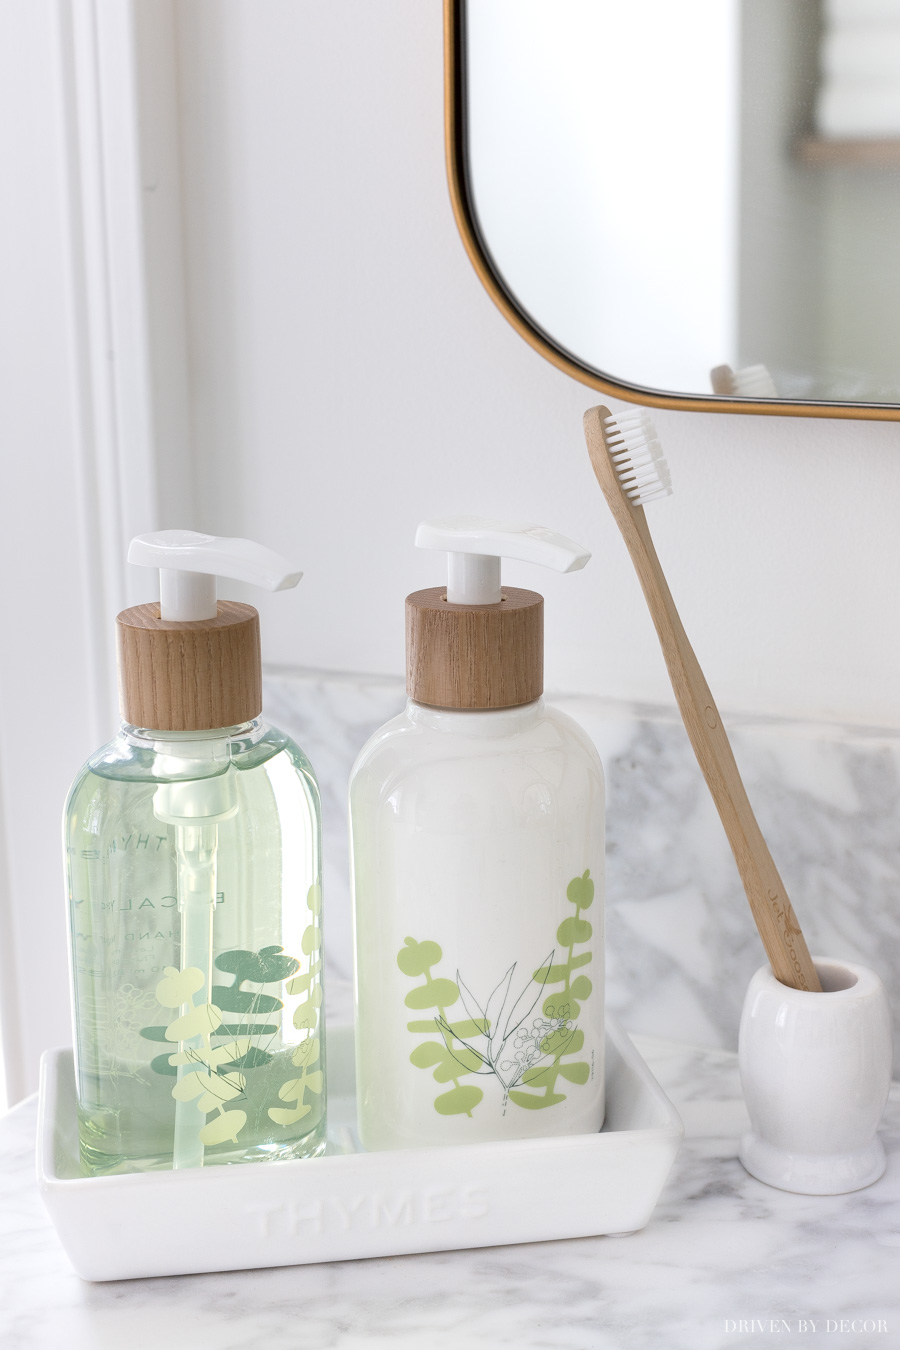 Soap and lotion pumps sit perfectly in this white tray by the bathroom sink. Love this simple toothbrush holder too!